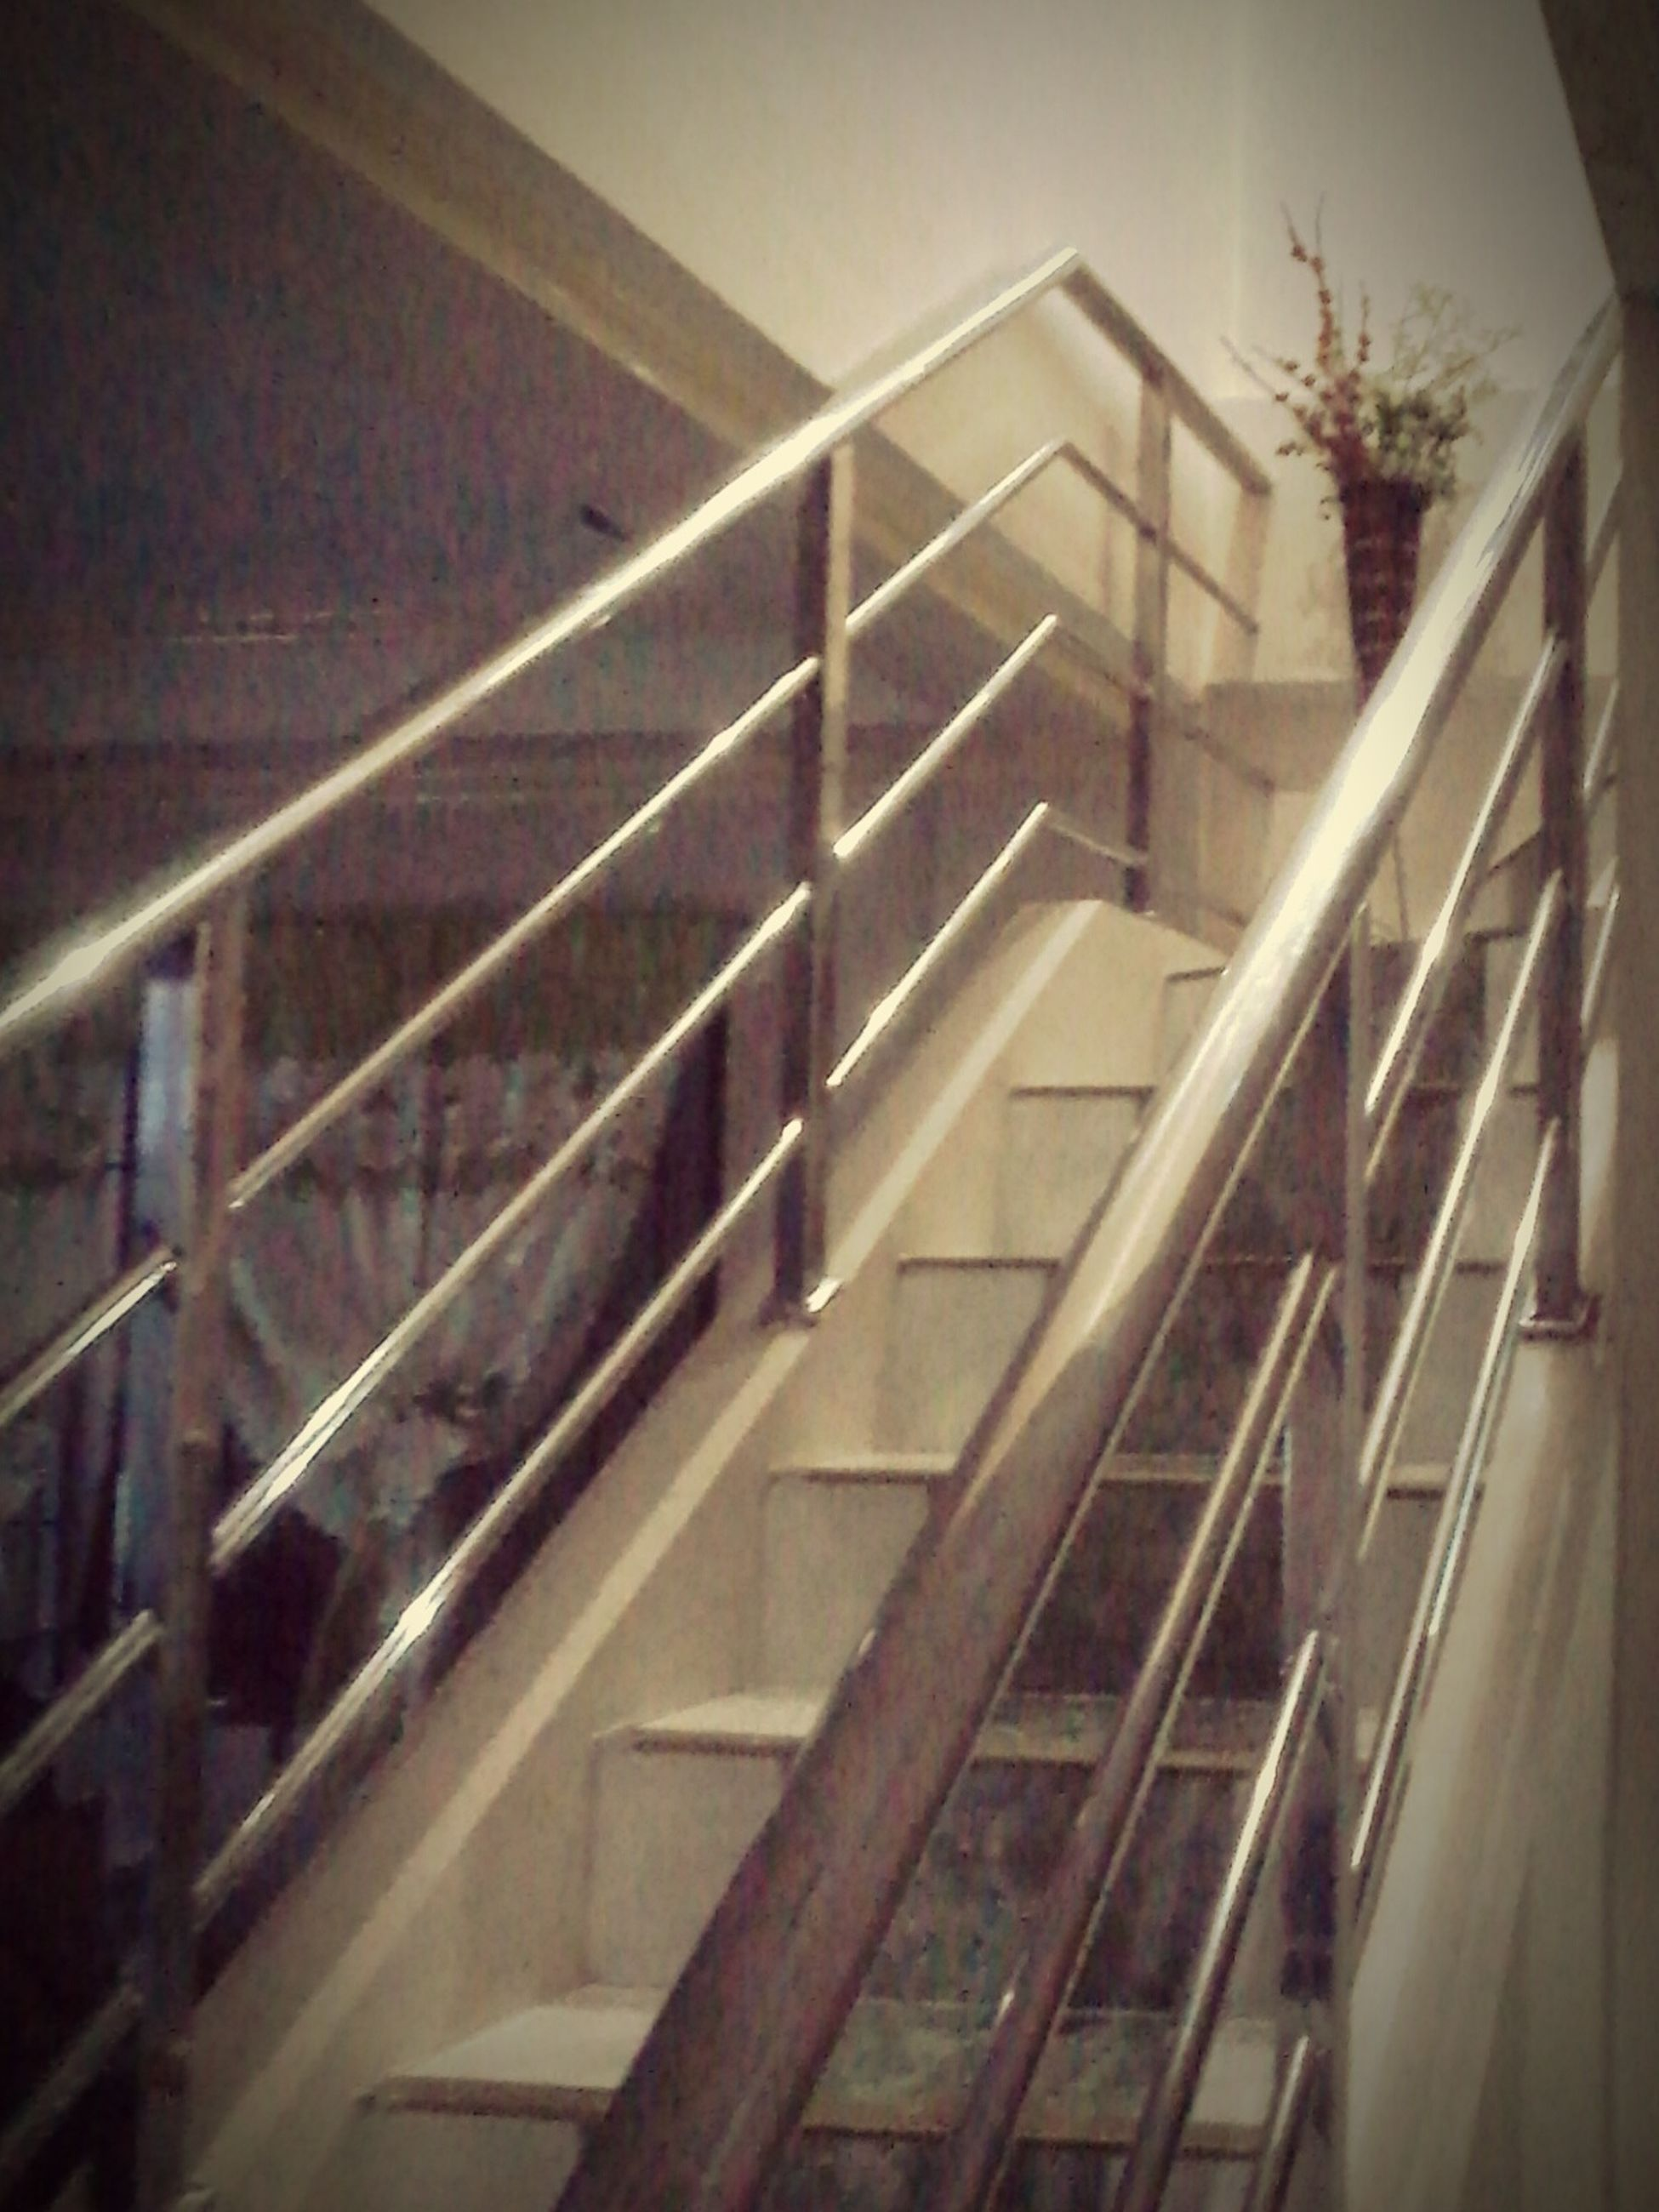 railing, staircase, steps and staircases, steps, built structure, architecture, low angle view, indoors, building, building exterior, metal, no people, connection, high angle view, day, stairs, bridge - man made structure, sunlight, balcony, escalator